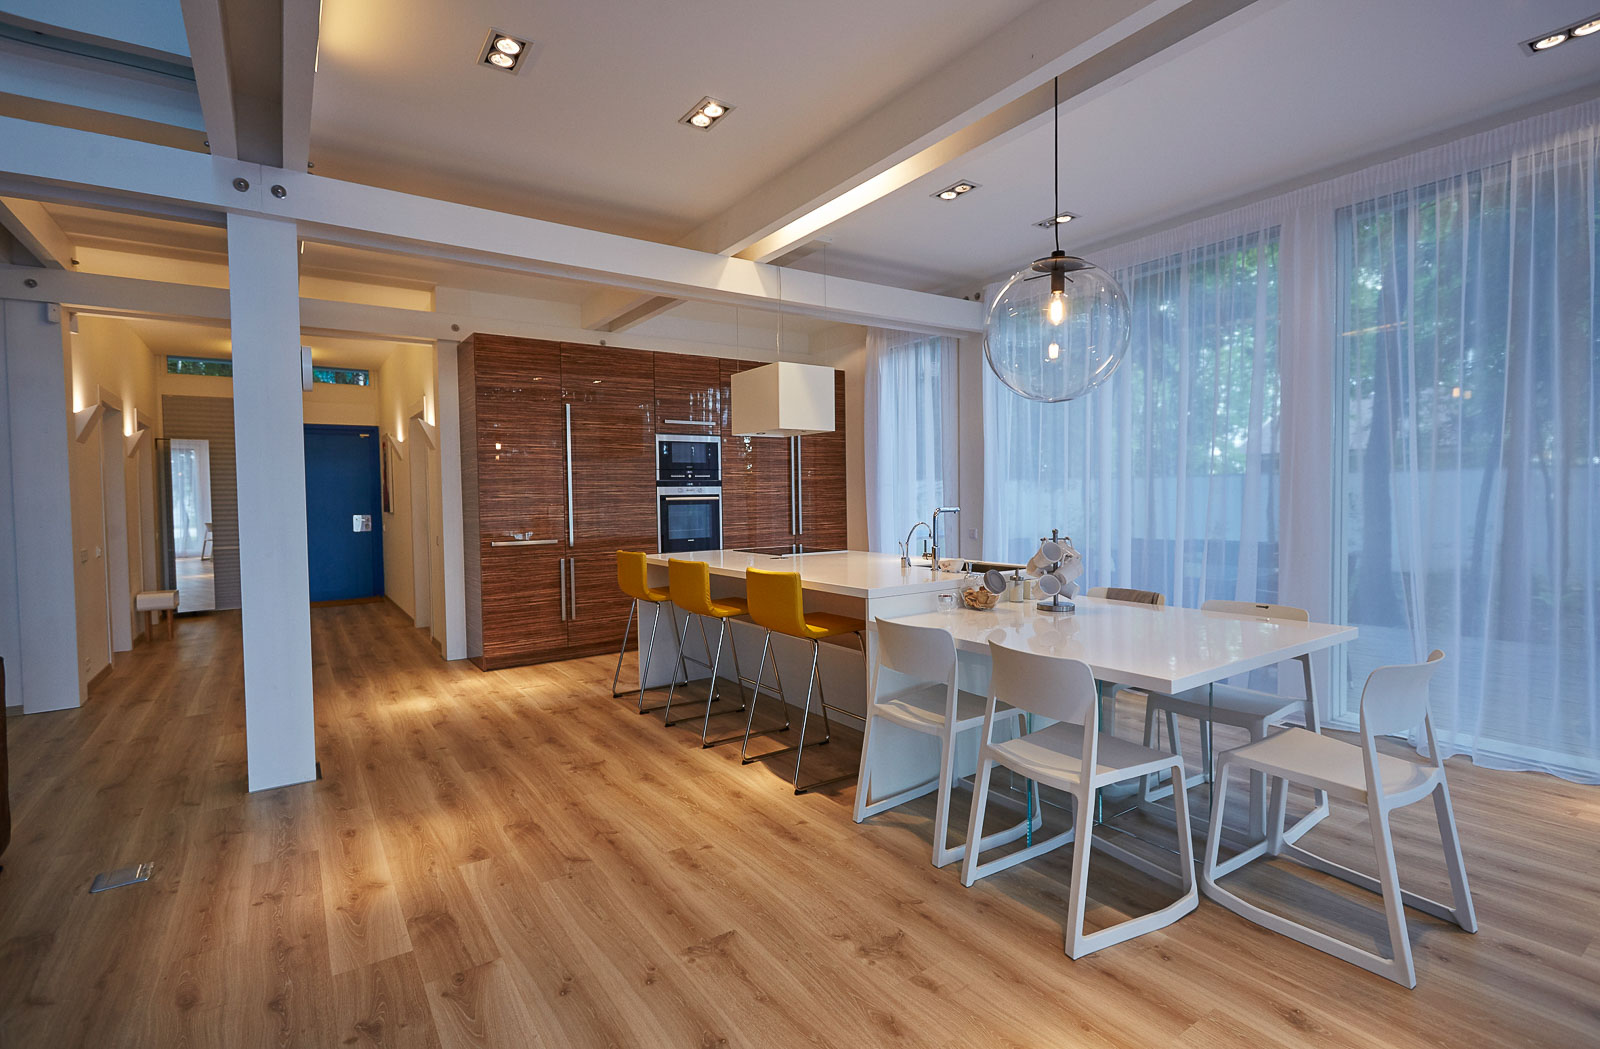 Kitchen island and dinning table in one